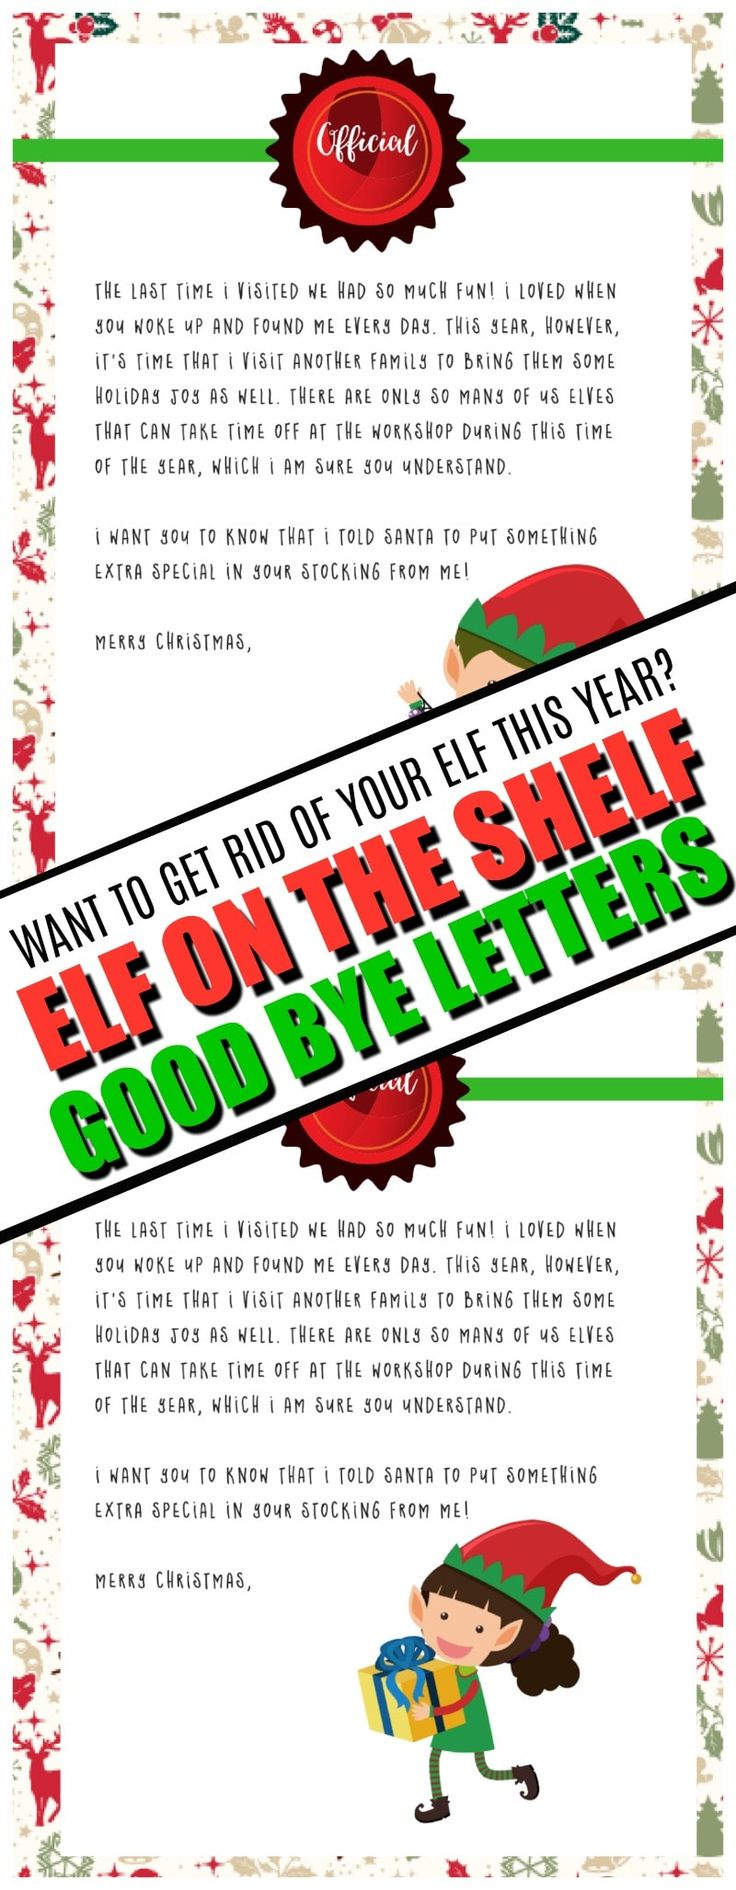 graphic about Elf on the Shelf Goodbye Letter Free Printable referred to as Luxurу Cost-free Printable Upon The Shelf Goodbye Letter upon the